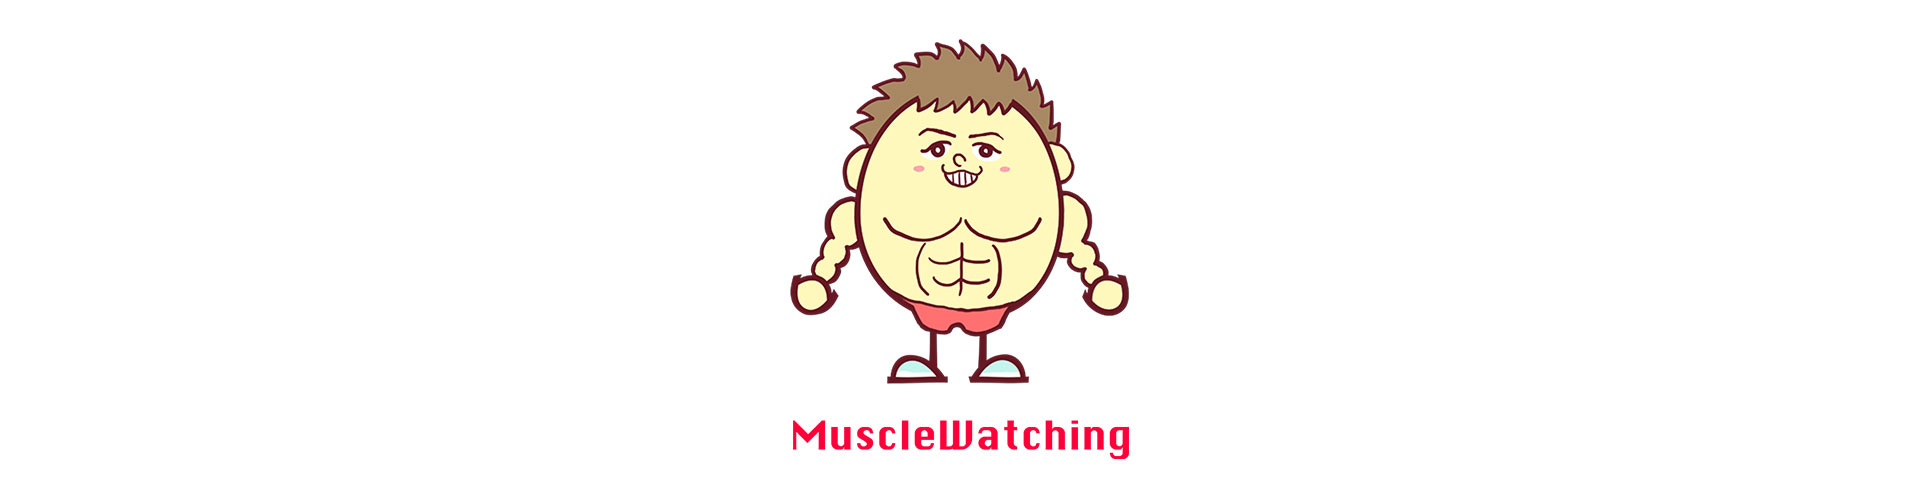 Muscle Watching 出演応募フォーム(プロフェッショナル連載応募フォーム追加)